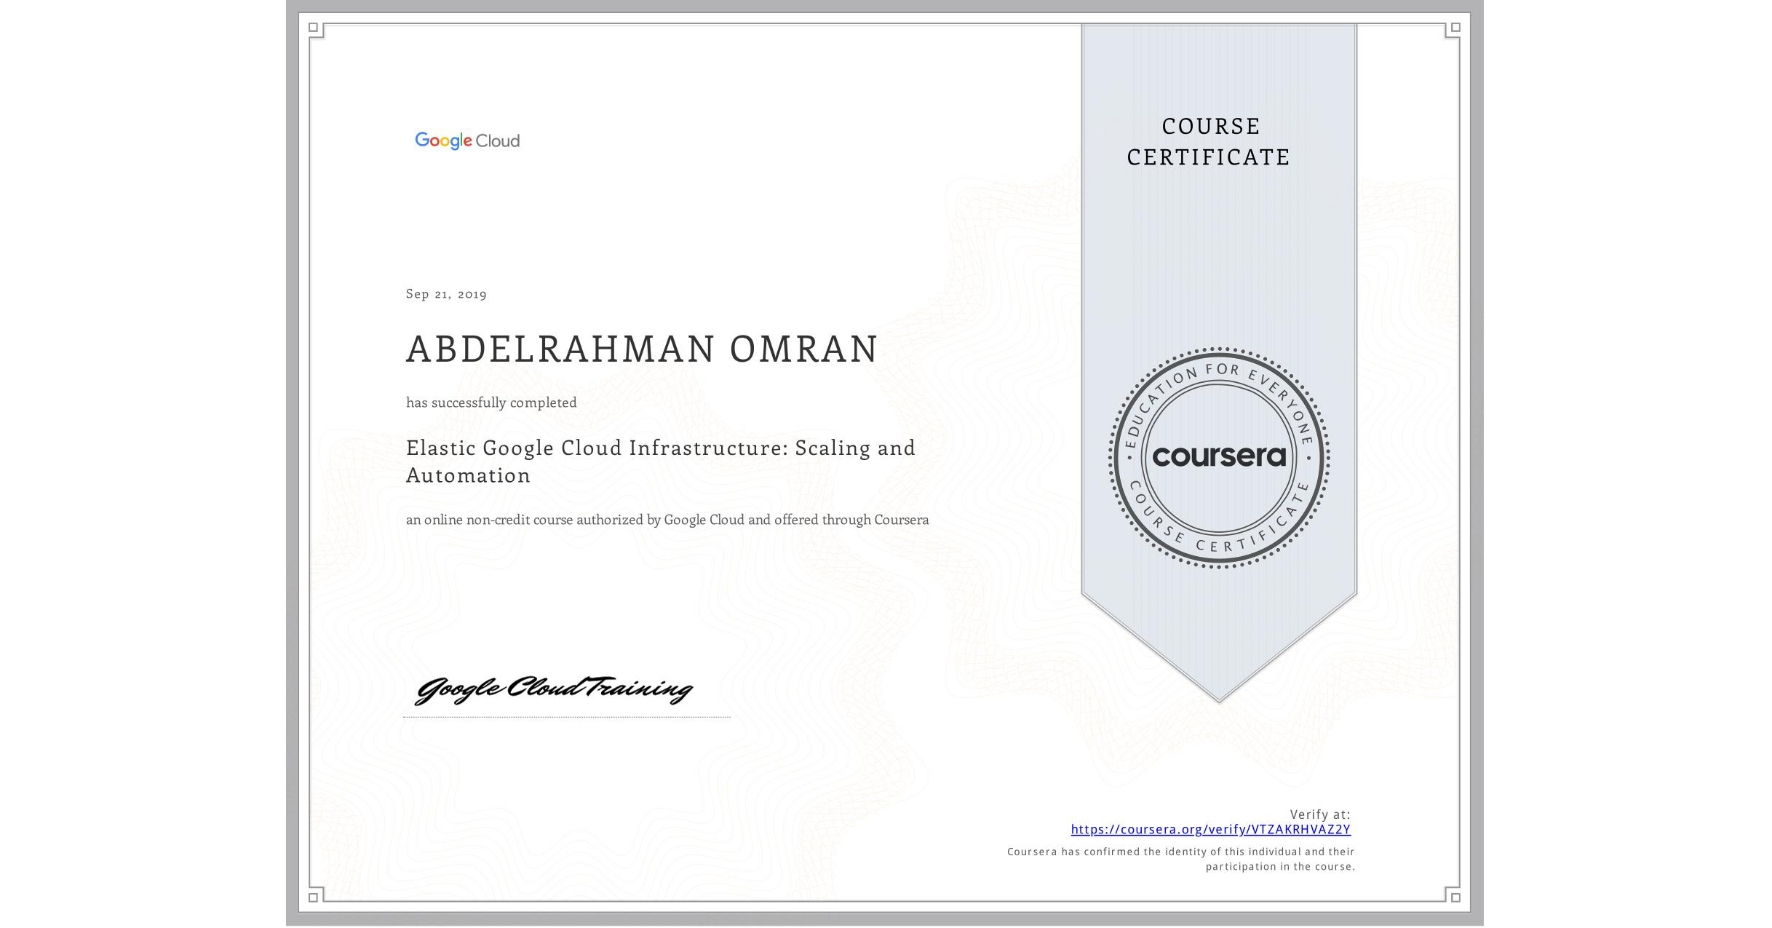 View certificate for ABDELRAHMAN OMRAN, Elastic Google Cloud Infrastructure: Scaling and Automation, an online non-credit course authorized by Google Cloud and offered through Coursera